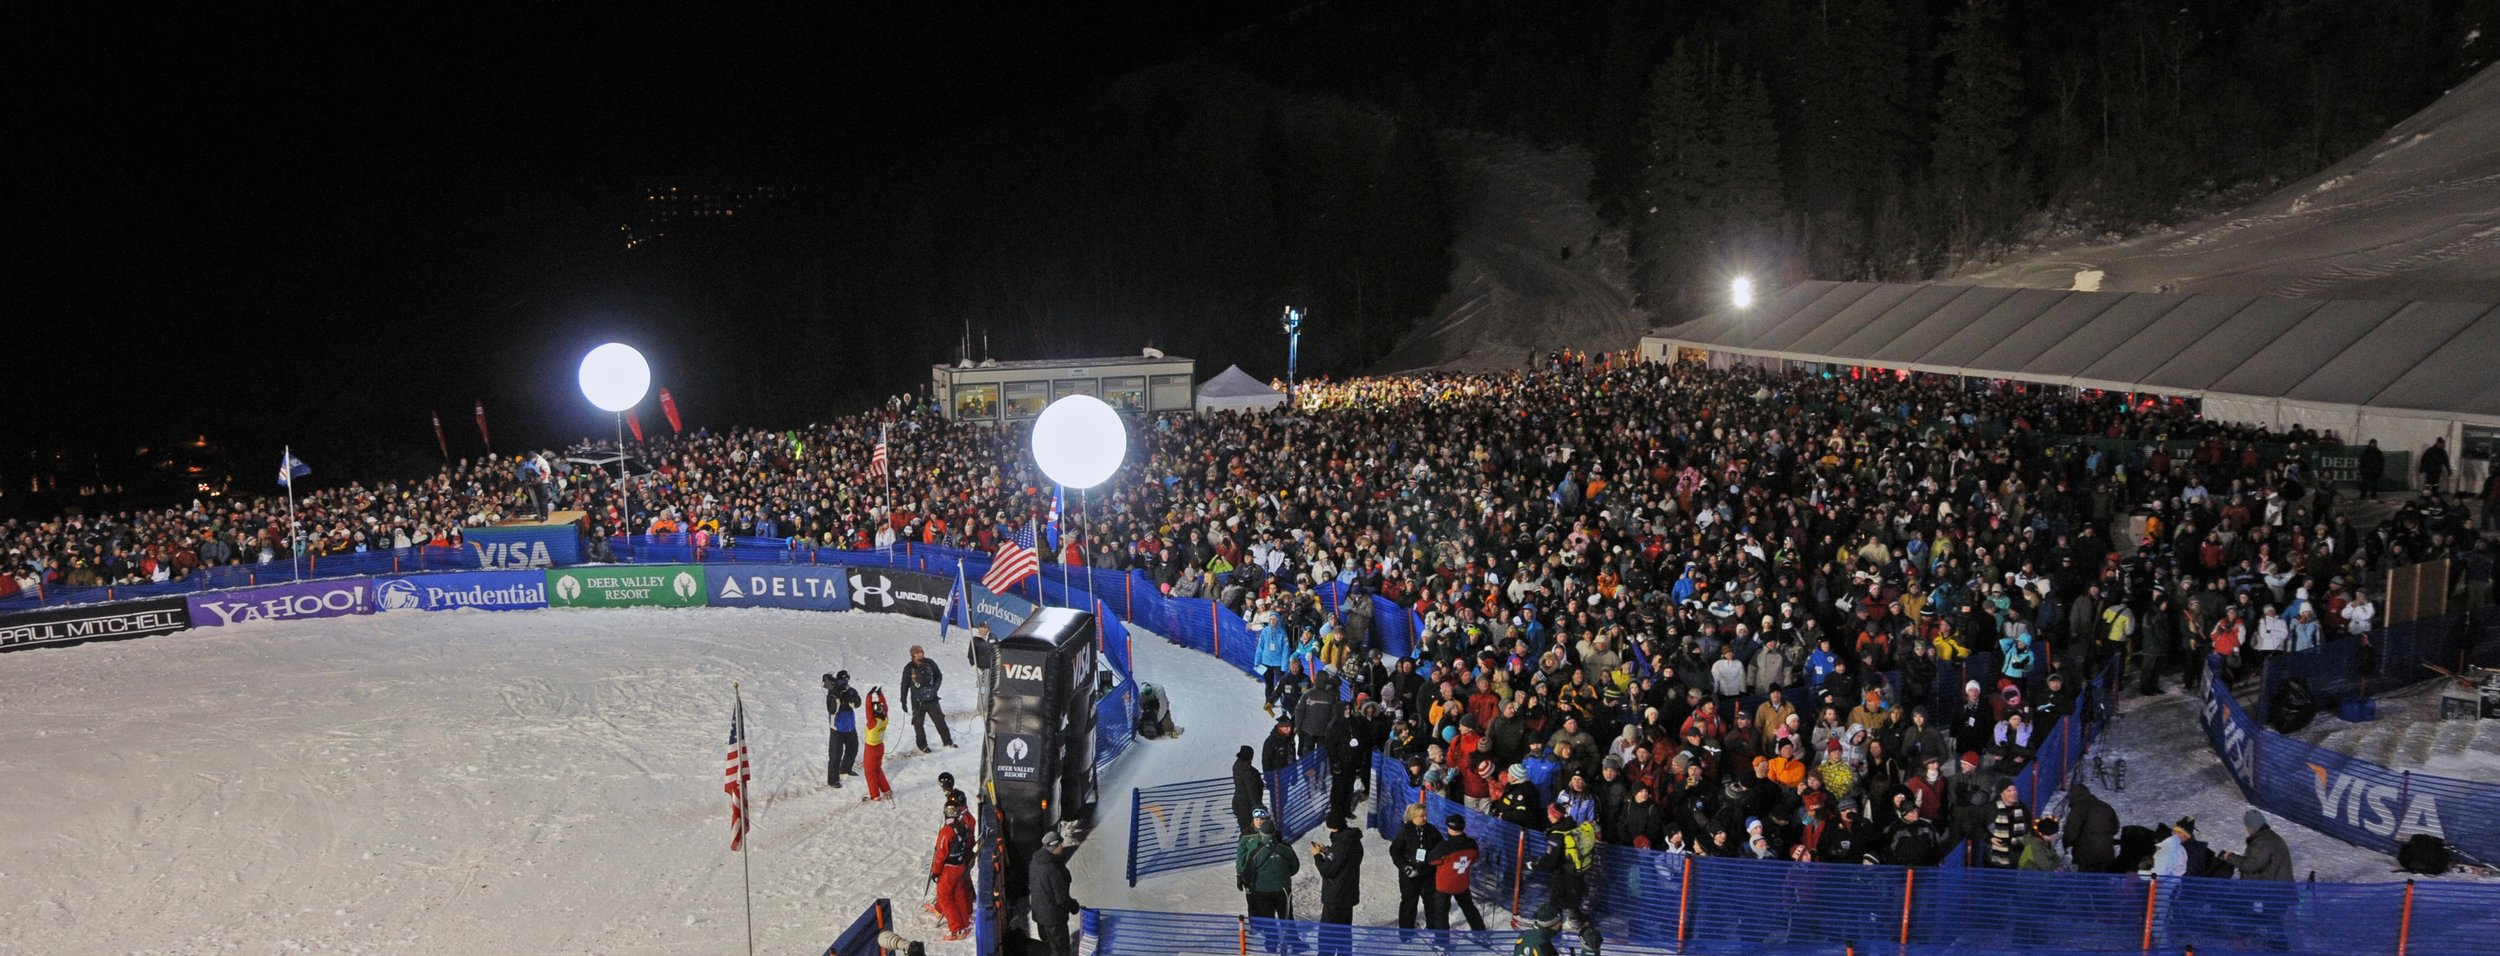 A crowd of over 5,000 packed the finish area at the freestyle World Cup aerials at the 2010 Visa Freestyle International at Deer Valley Resort in Park City, Utah. (U.S. Ski & Snowboard -Tom Kelly)